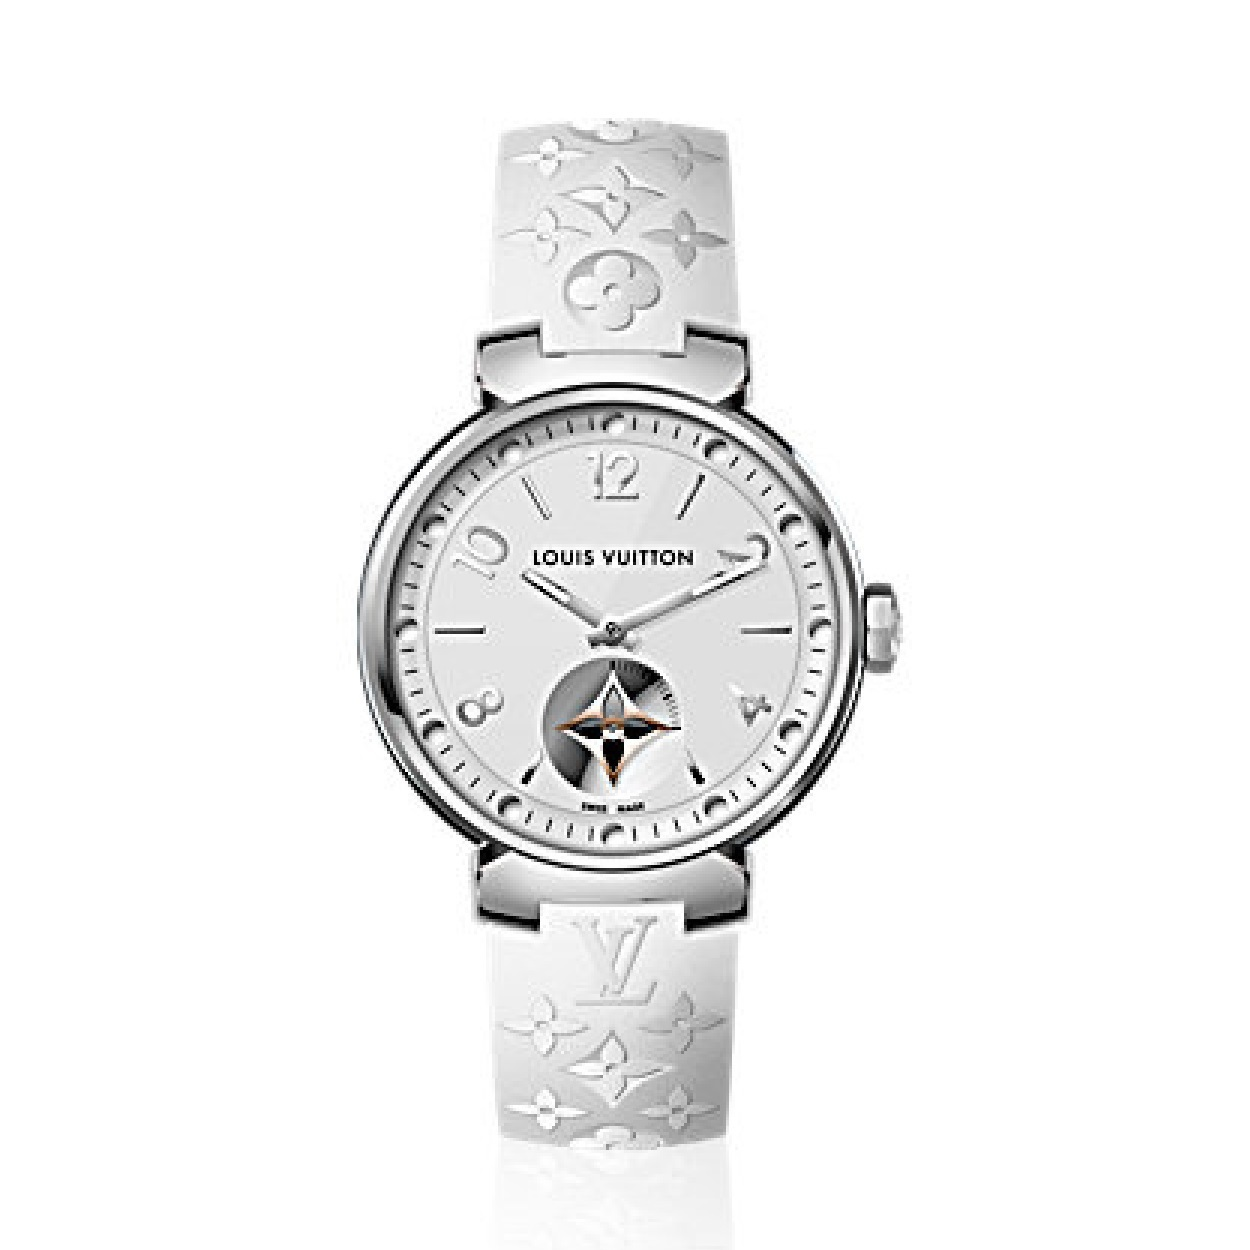 【Louis Vuitton】TAMBOUR MOON STAR 28 モノグラム ホワイト